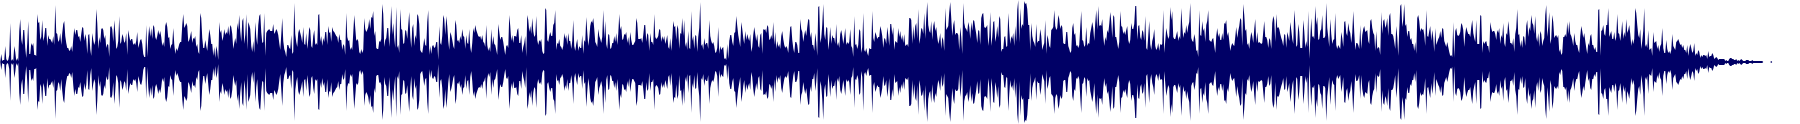 waveform of track #86529